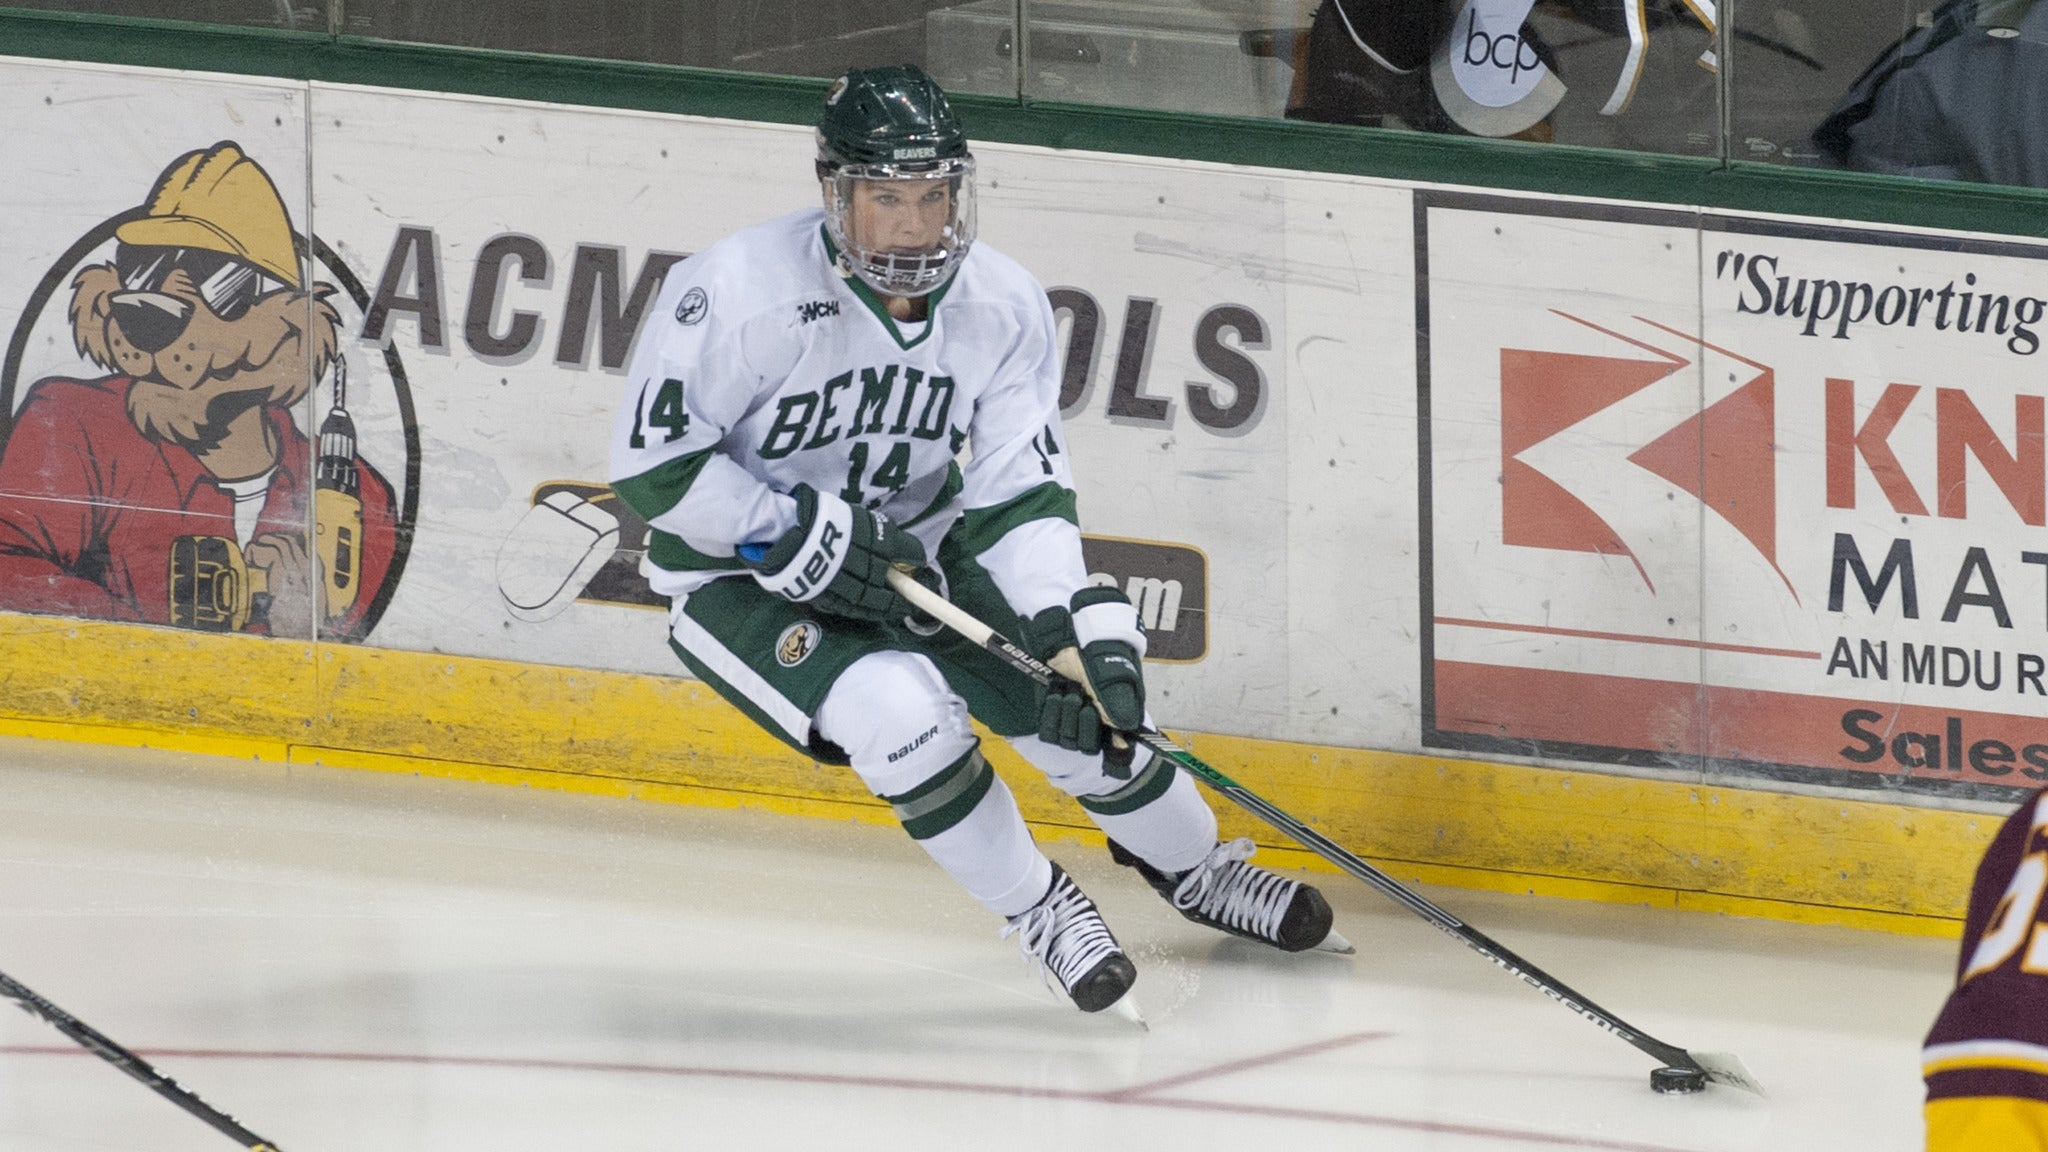 Bemidji State Women's Hockey v Regina-Exhibition